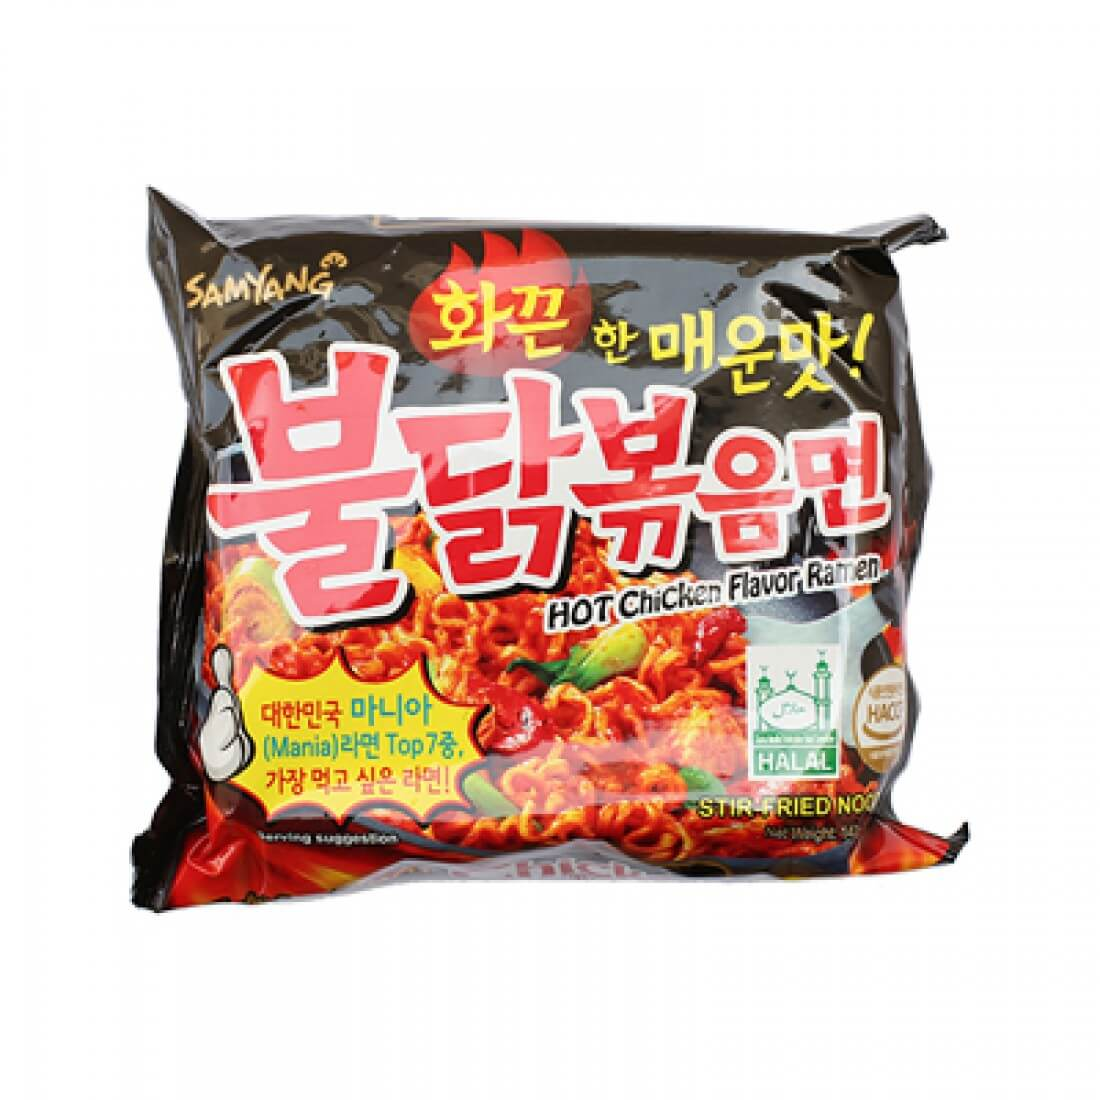 Samyang Extremely Spicy Chicken Flavor Ramen Pack 140 g